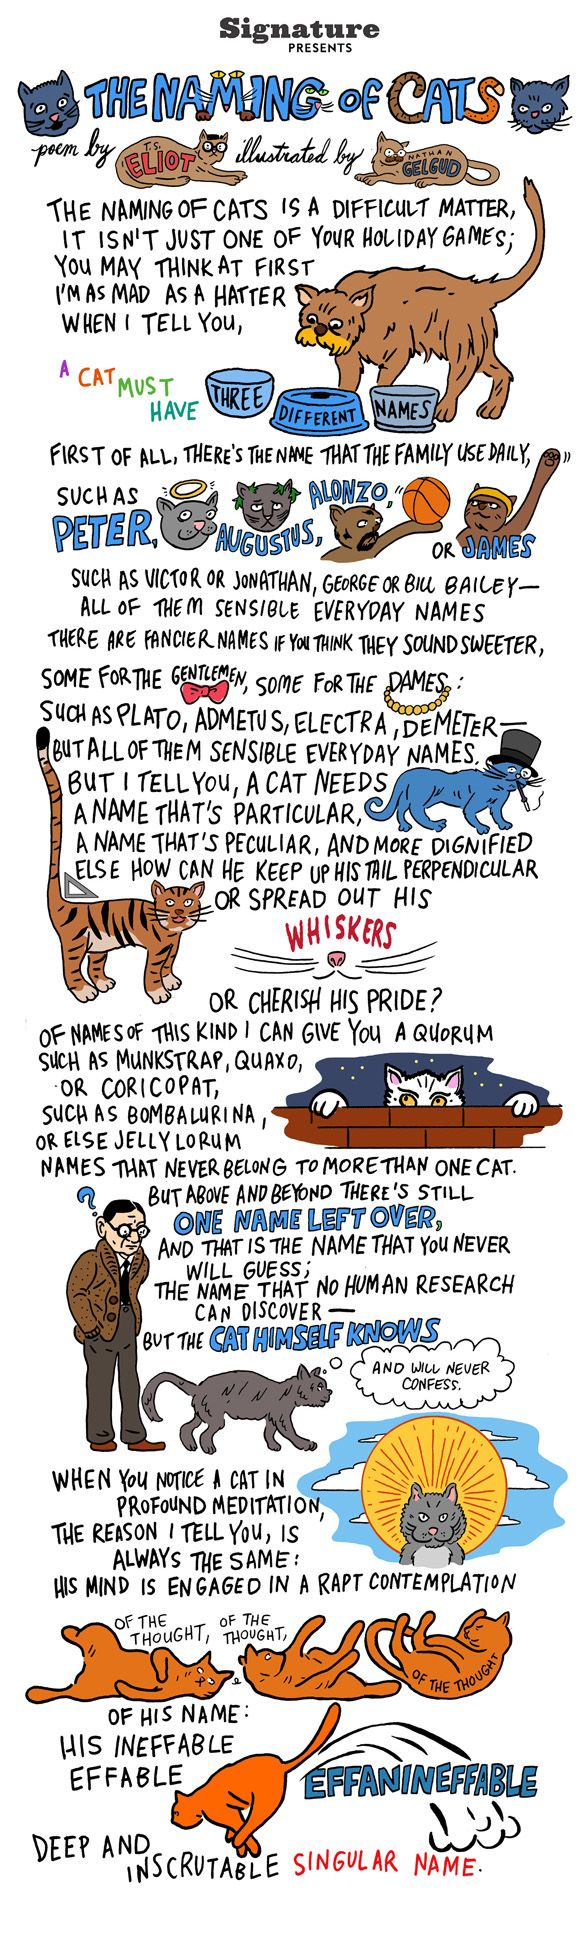 TS Eliot's 'The Naming of Cats': A Poem for Cat Lovers of All Stripes